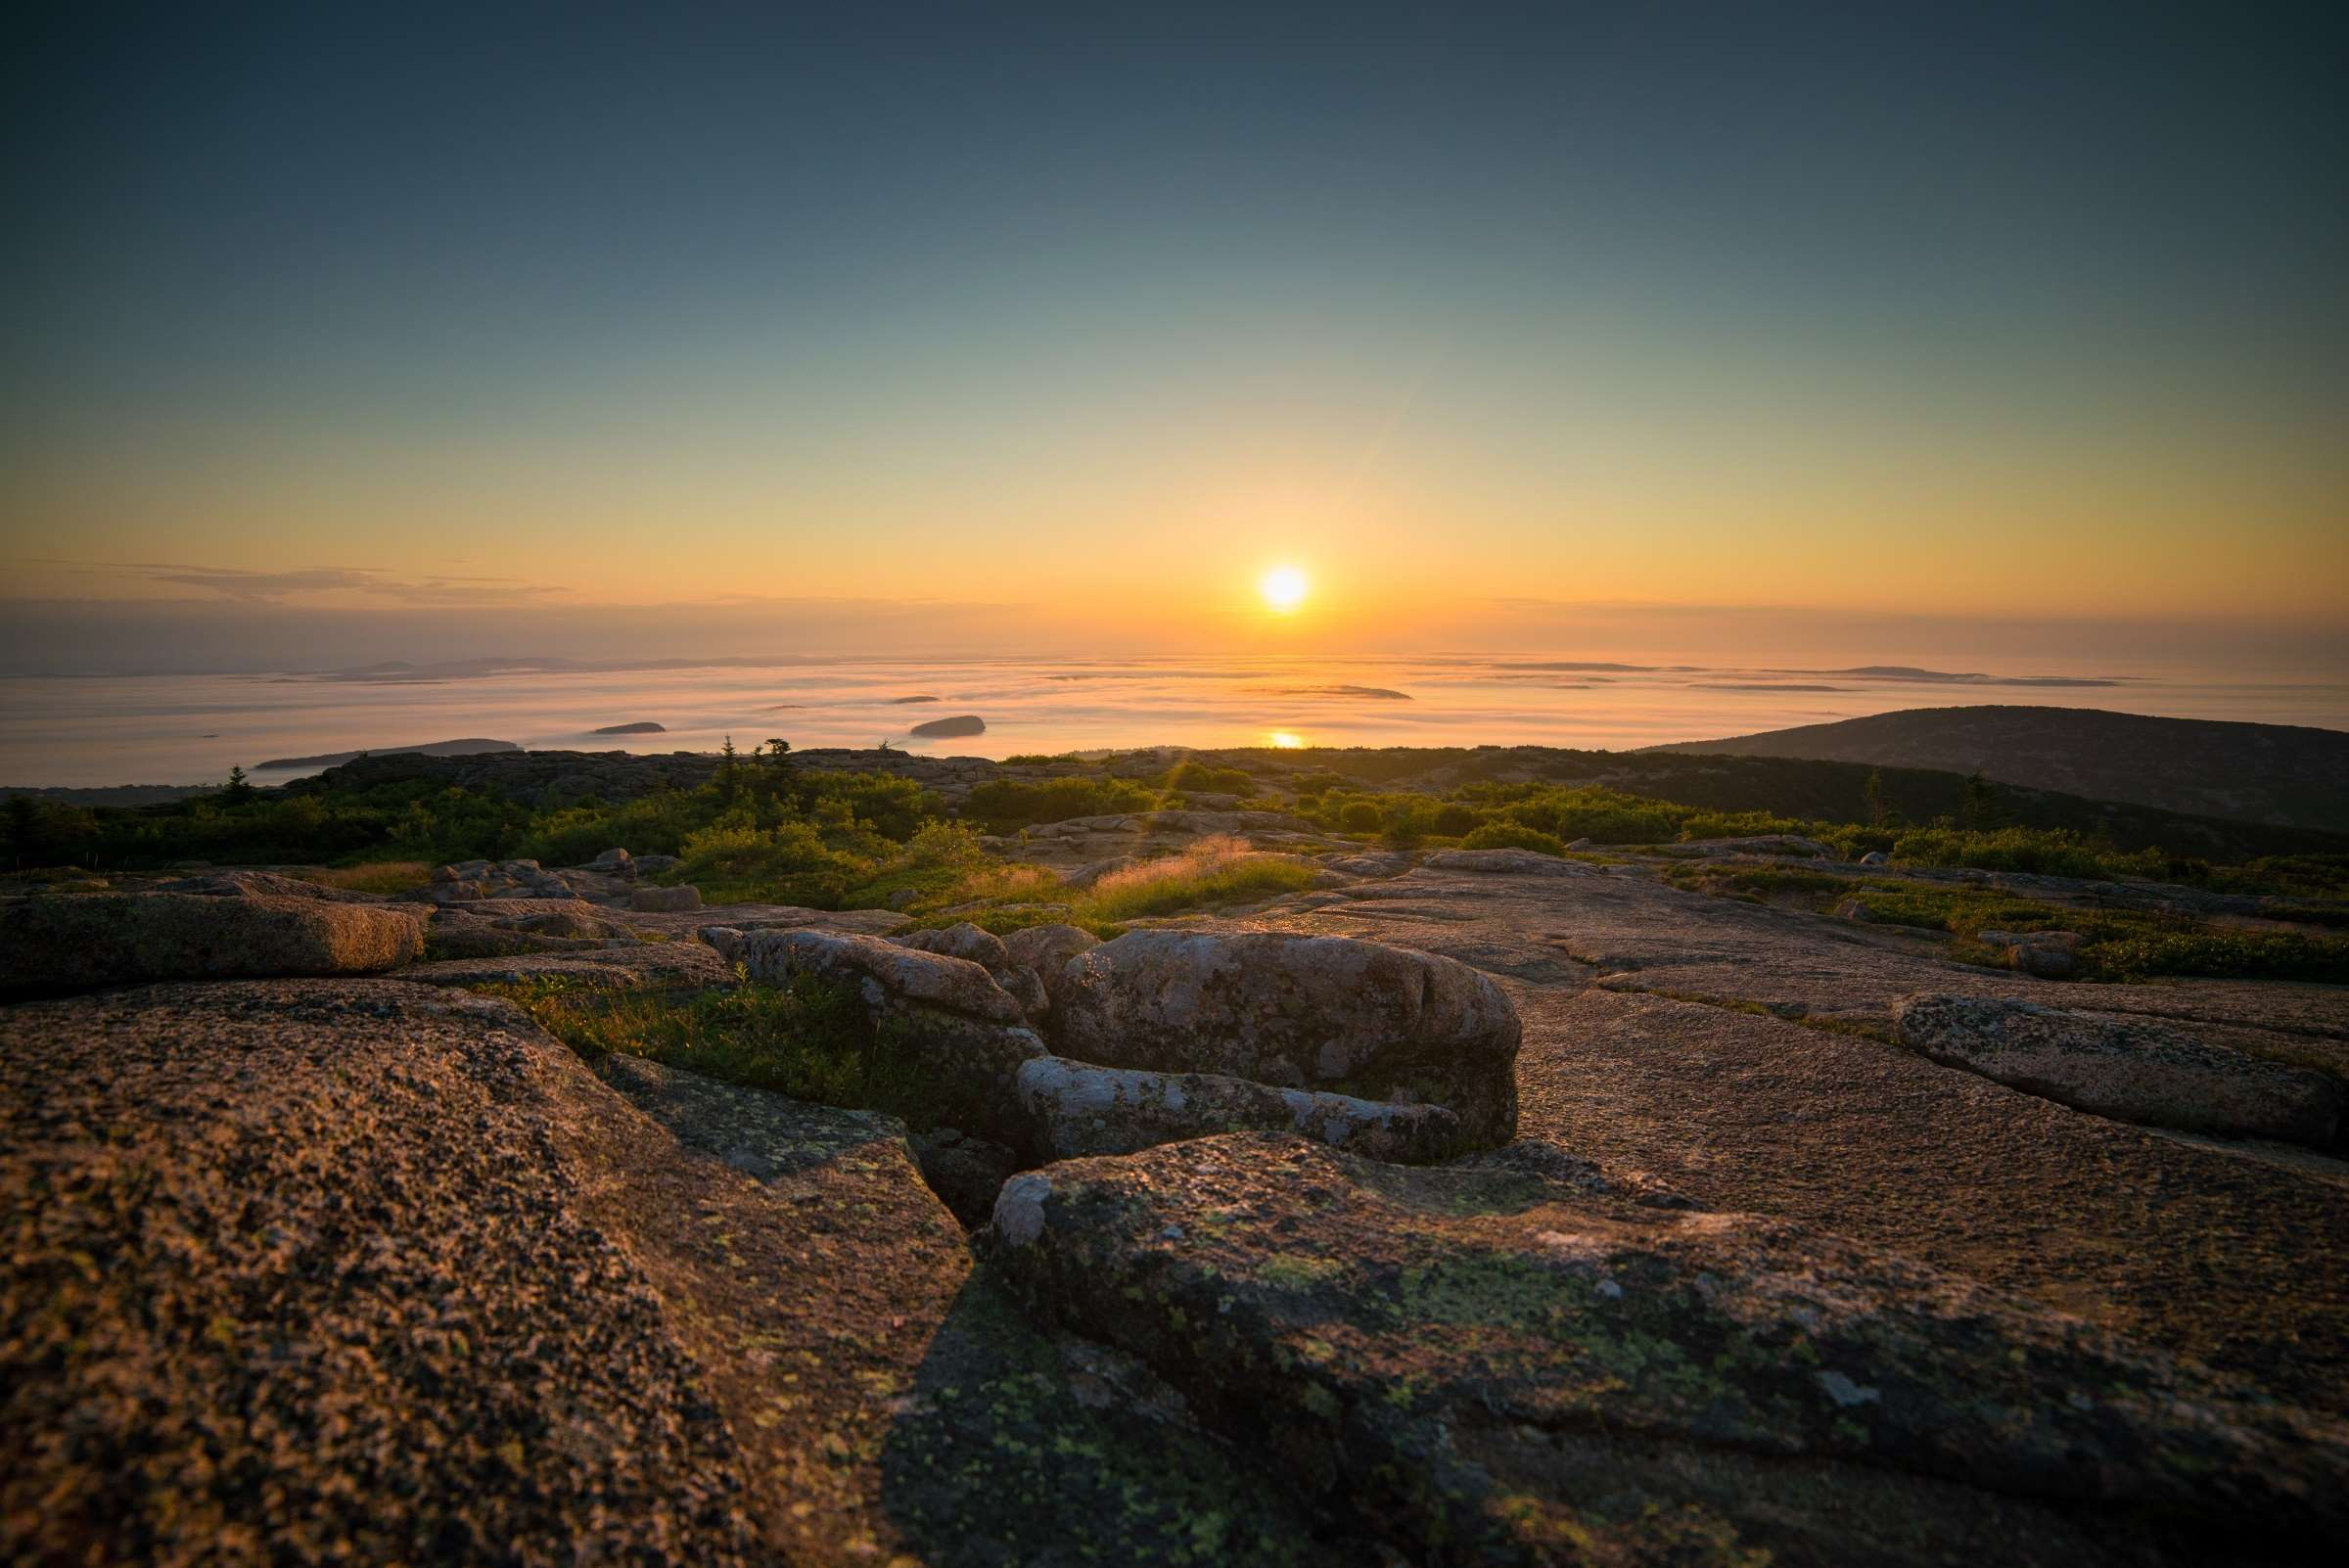 3059680-acadia-national-park_bar-harbor_cadillac-mountain_coastal_coastline_dawn_early_landscape_maine_morning_nature_ocean_outdoors_rugged_scenic